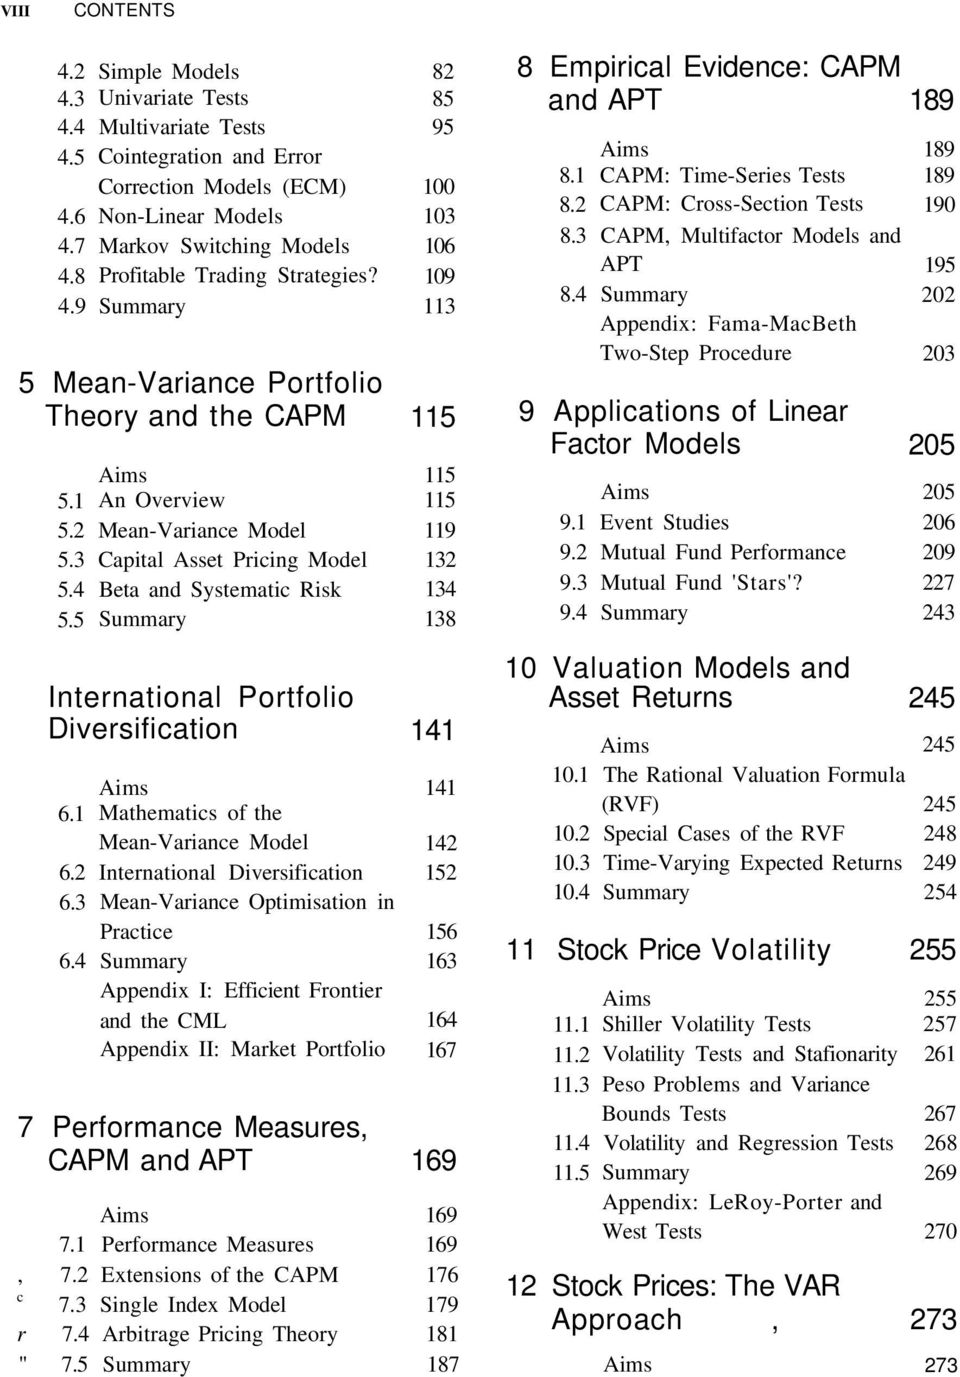 5 Mean-Variance Portfolio Theory and the CAPM 5.1 5.2 5.3 5.4 5.5 An Overview Mean-Variance Model Capital Asset Pricing Model Beta and Systematic Risk International Portfolio Diversification 6.1 6.